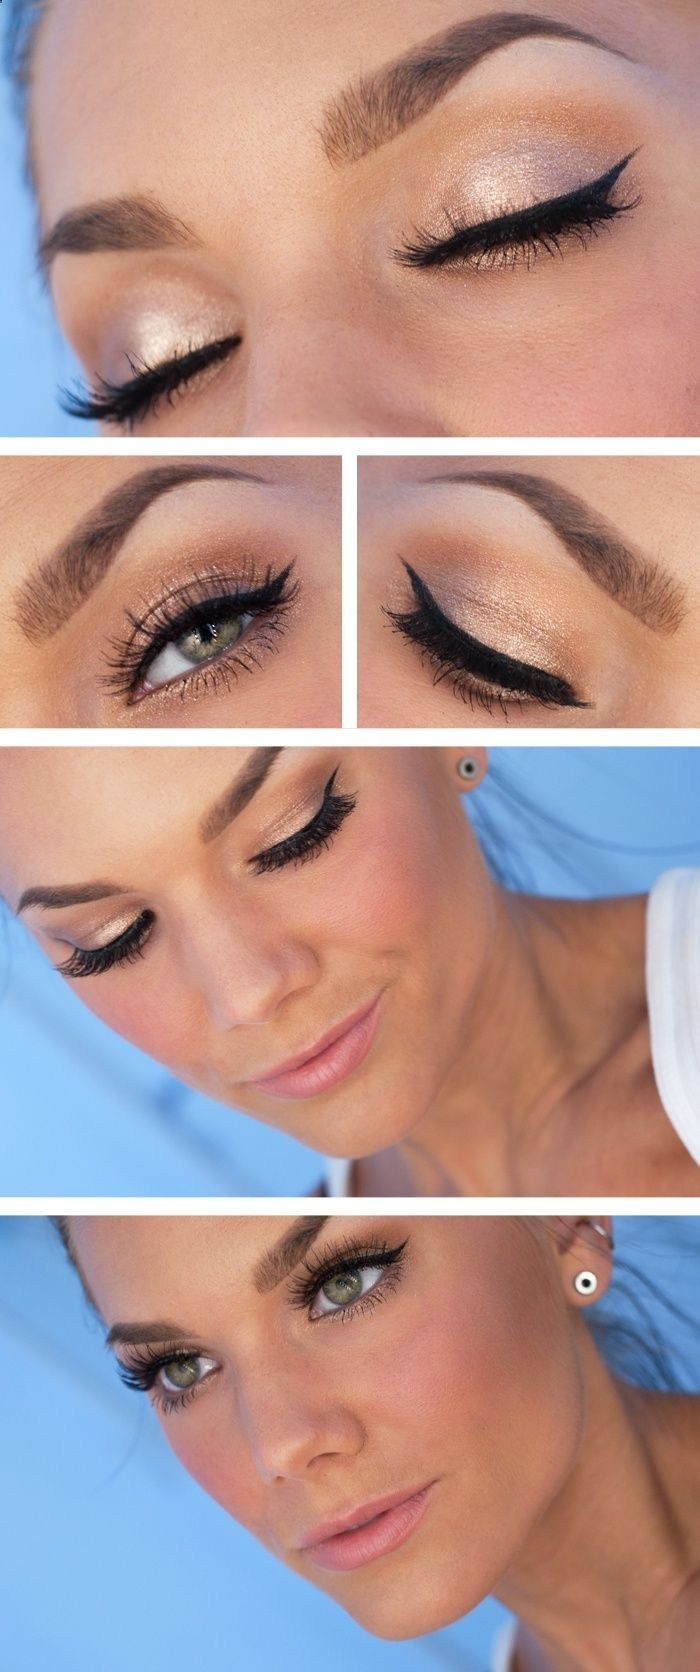 I could probably draw one eye like that but I doubt the other would match. Oh how I wish I had that skill!